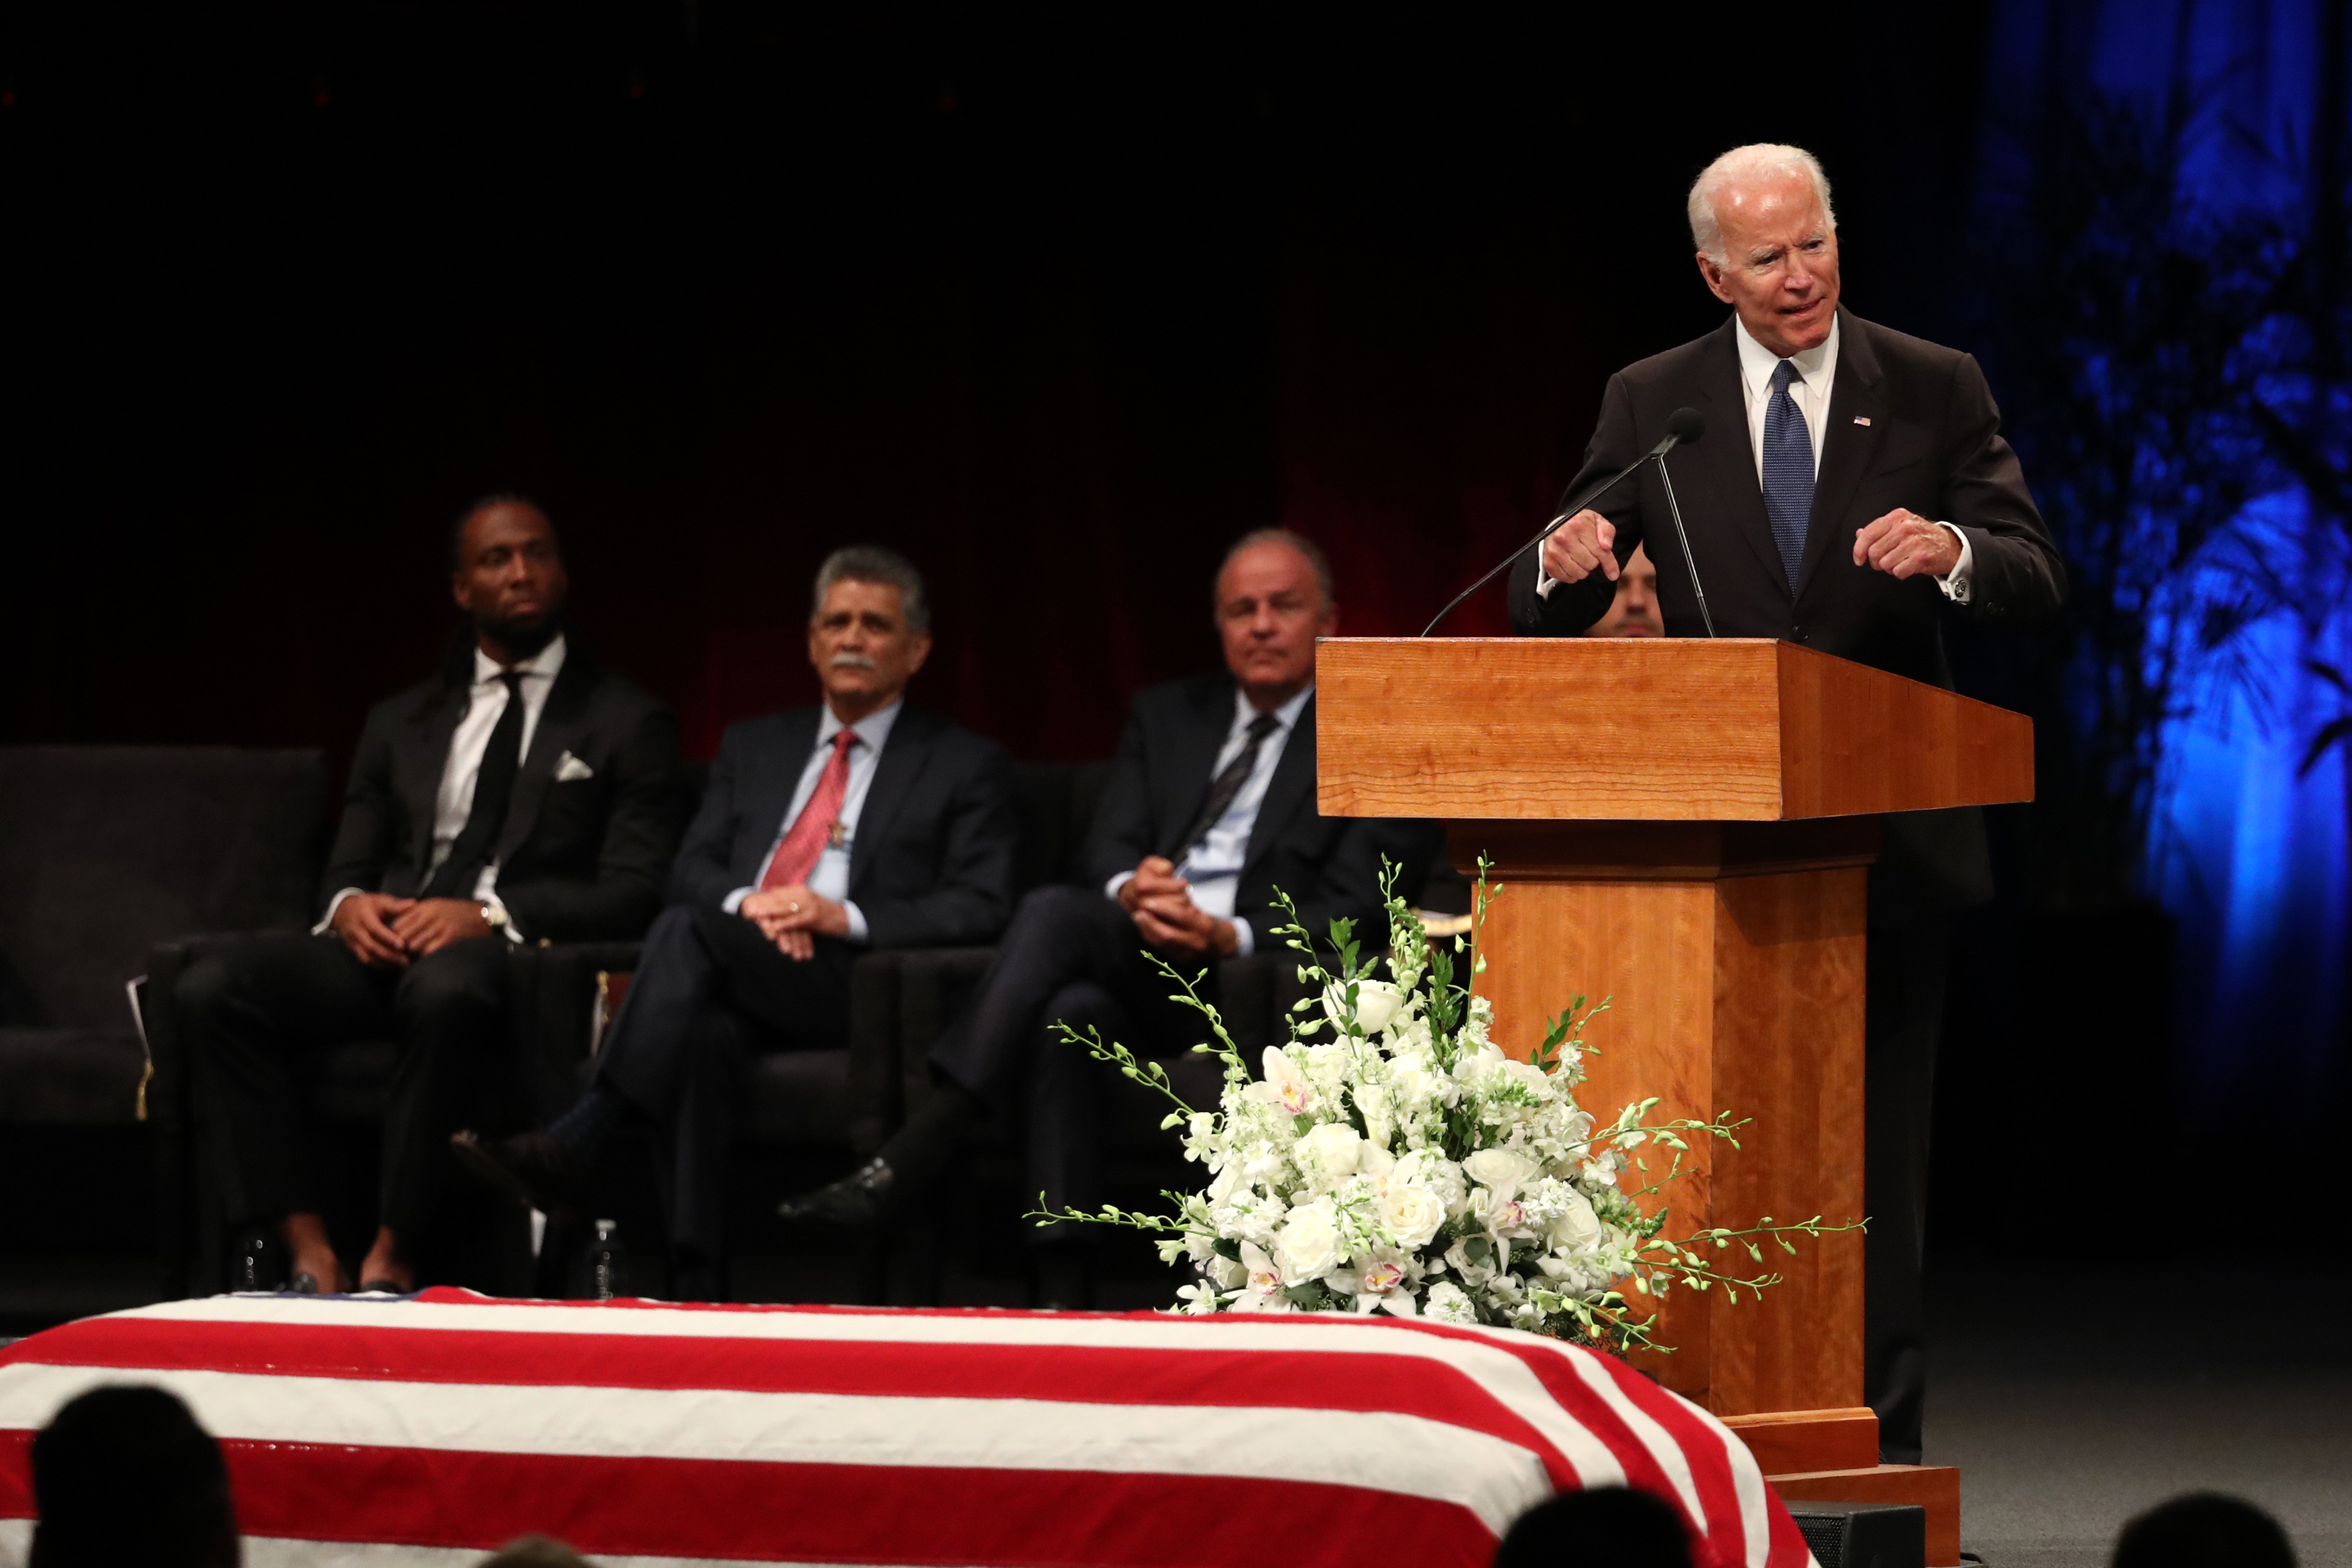 John Mccain Memorial Service The Most Heartbreaking Moments